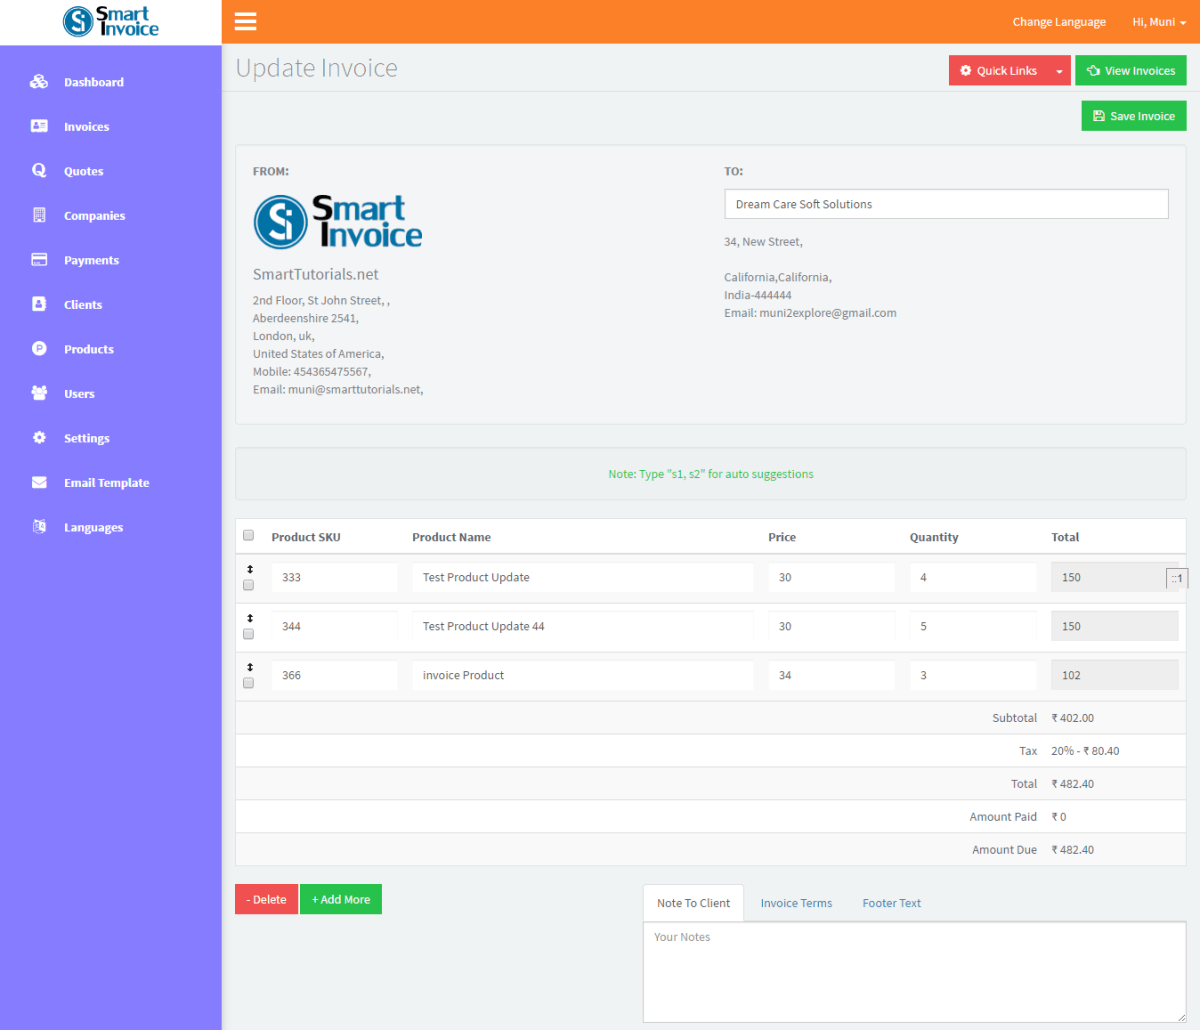 Smart Invoice System Version Using Bootstrap JQuery PHP MySQL - Invoice 3